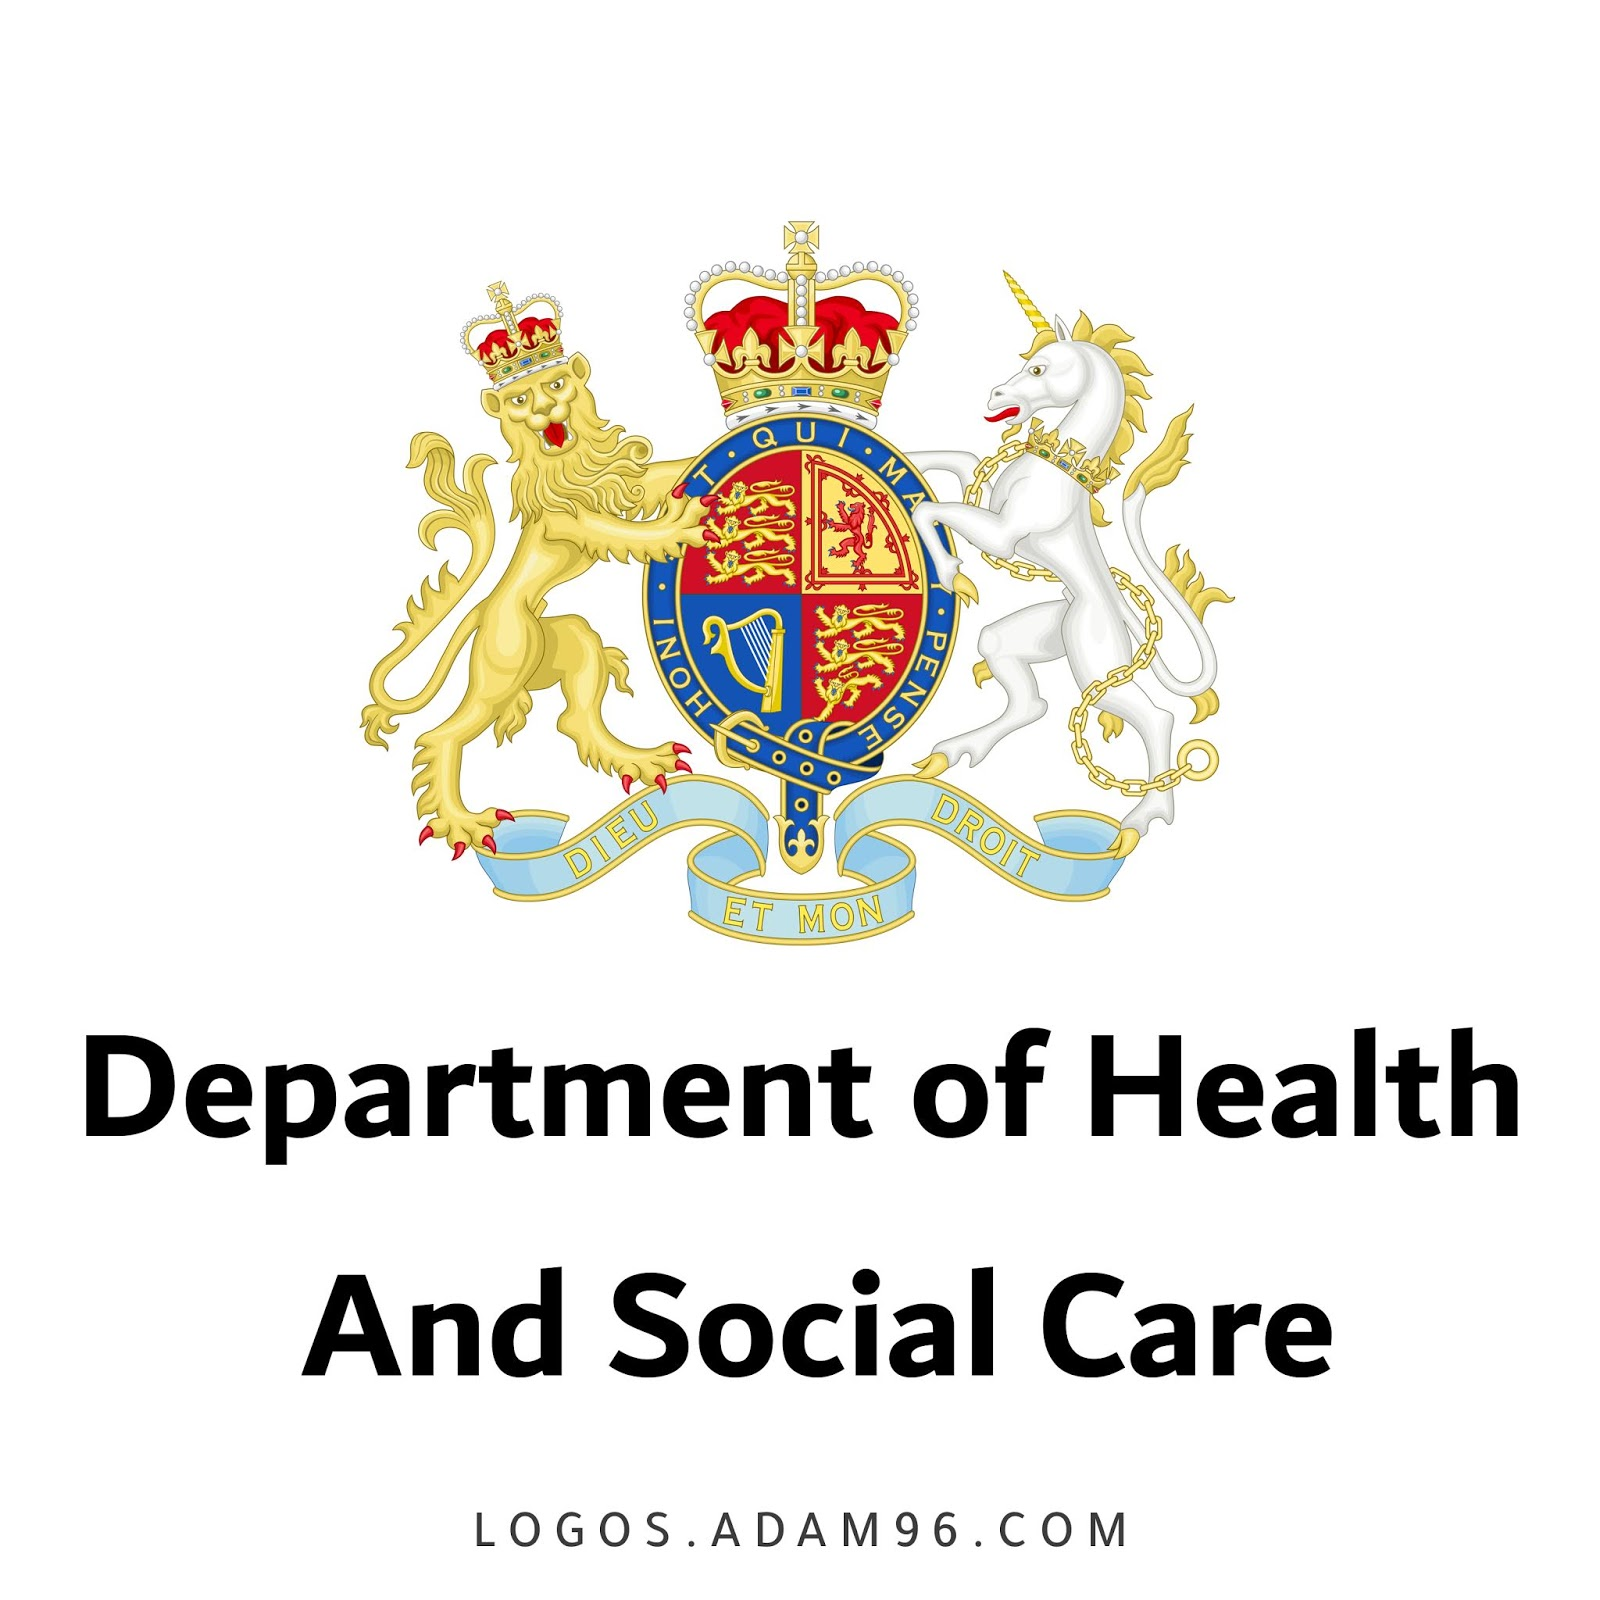 British Ministry of Health